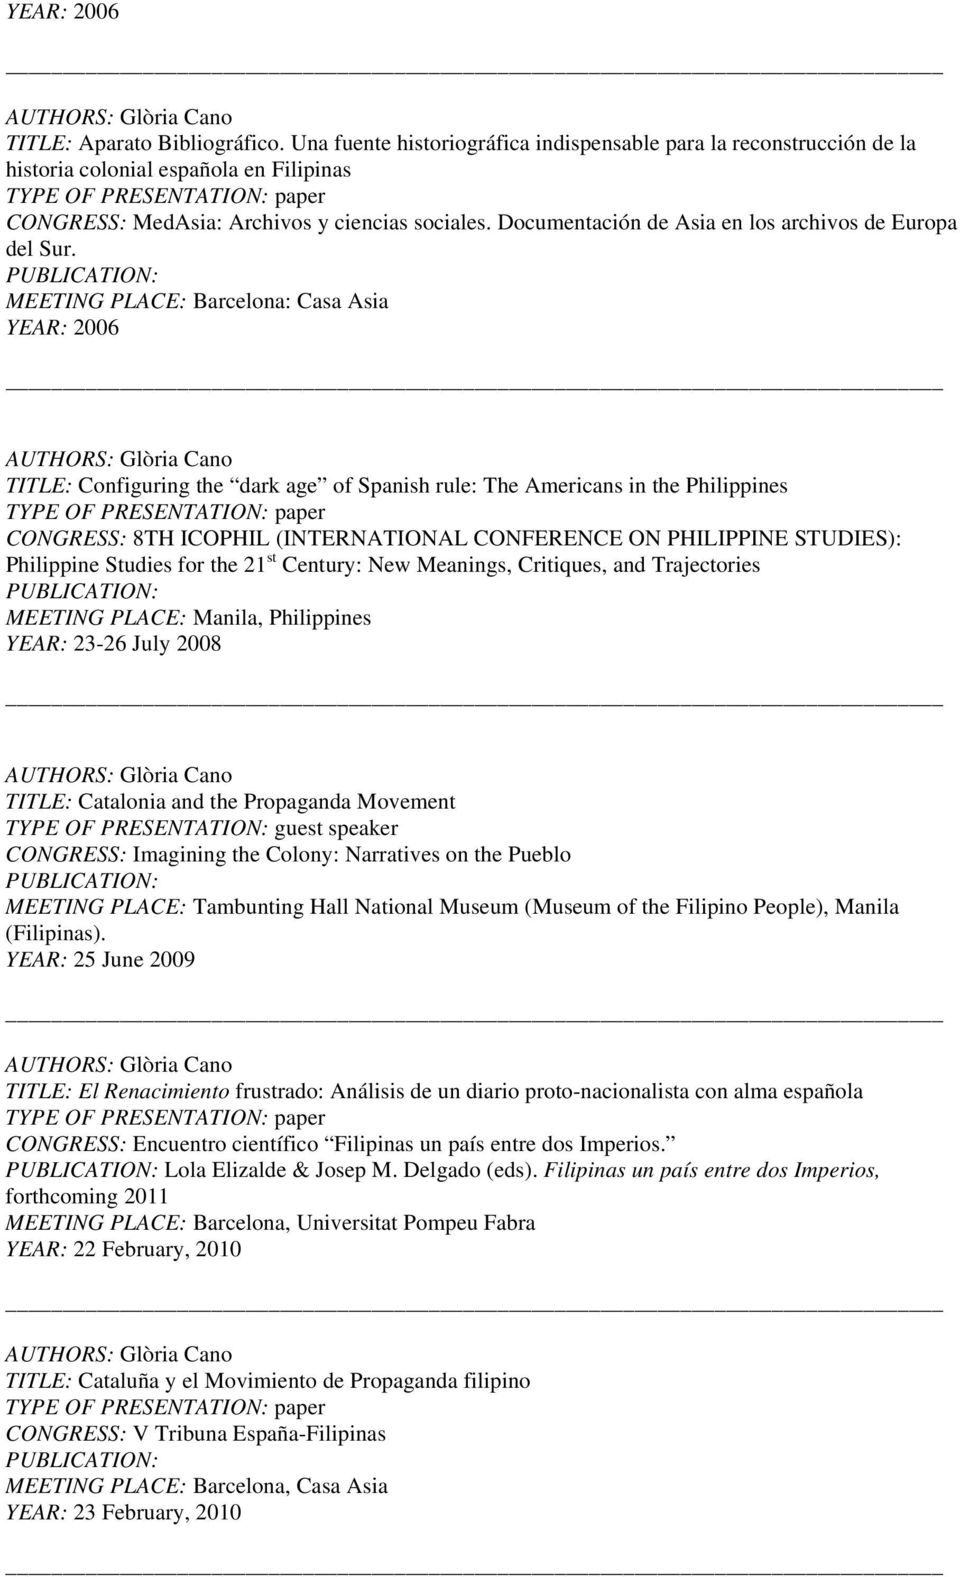 MEETING PLACE: Barcelona: Casa Asia YEAR: 2006 TITLE: Configuring the dark age of Spanish rule: The Americans in the Philippines CONGRESS: 8TH ICOPHIL (INTERNATIONAL CONFERENCE ON PHILIPPINE